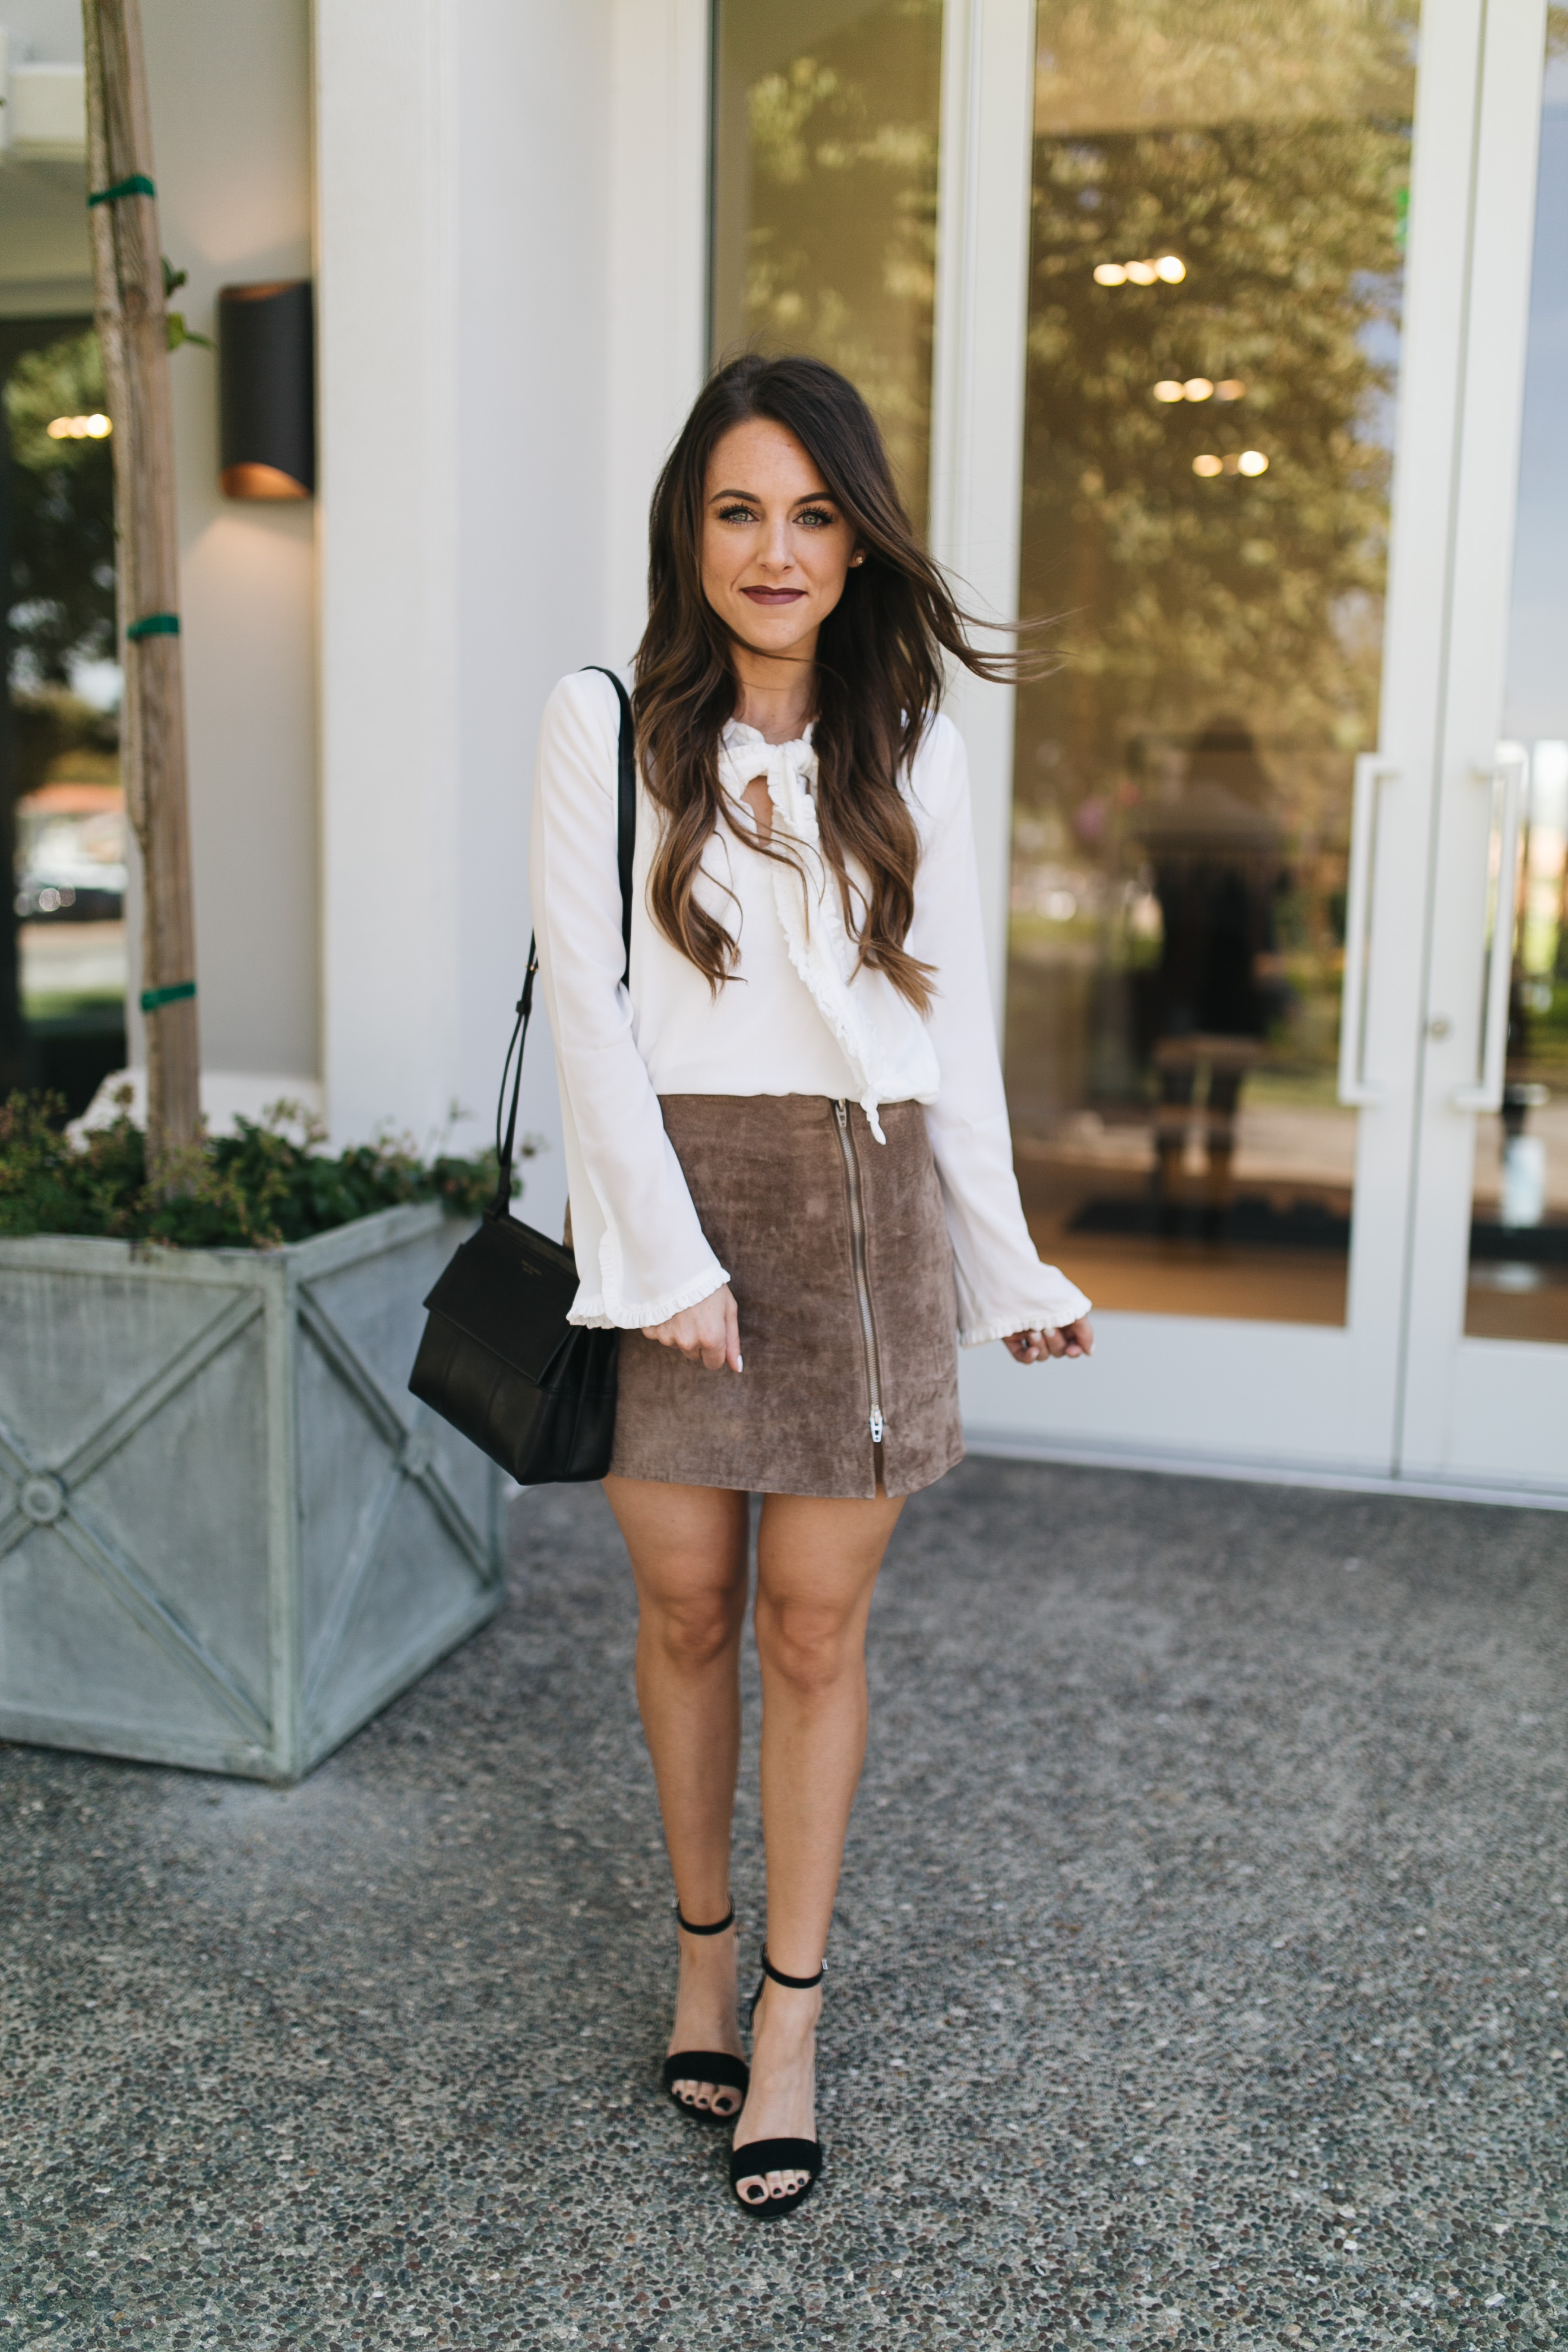 Style blogger Daryl-Ann Denner shares inspiration for a weekend date night outfit for Fall and styles a suede miniskirt with a white bow blouse and heels